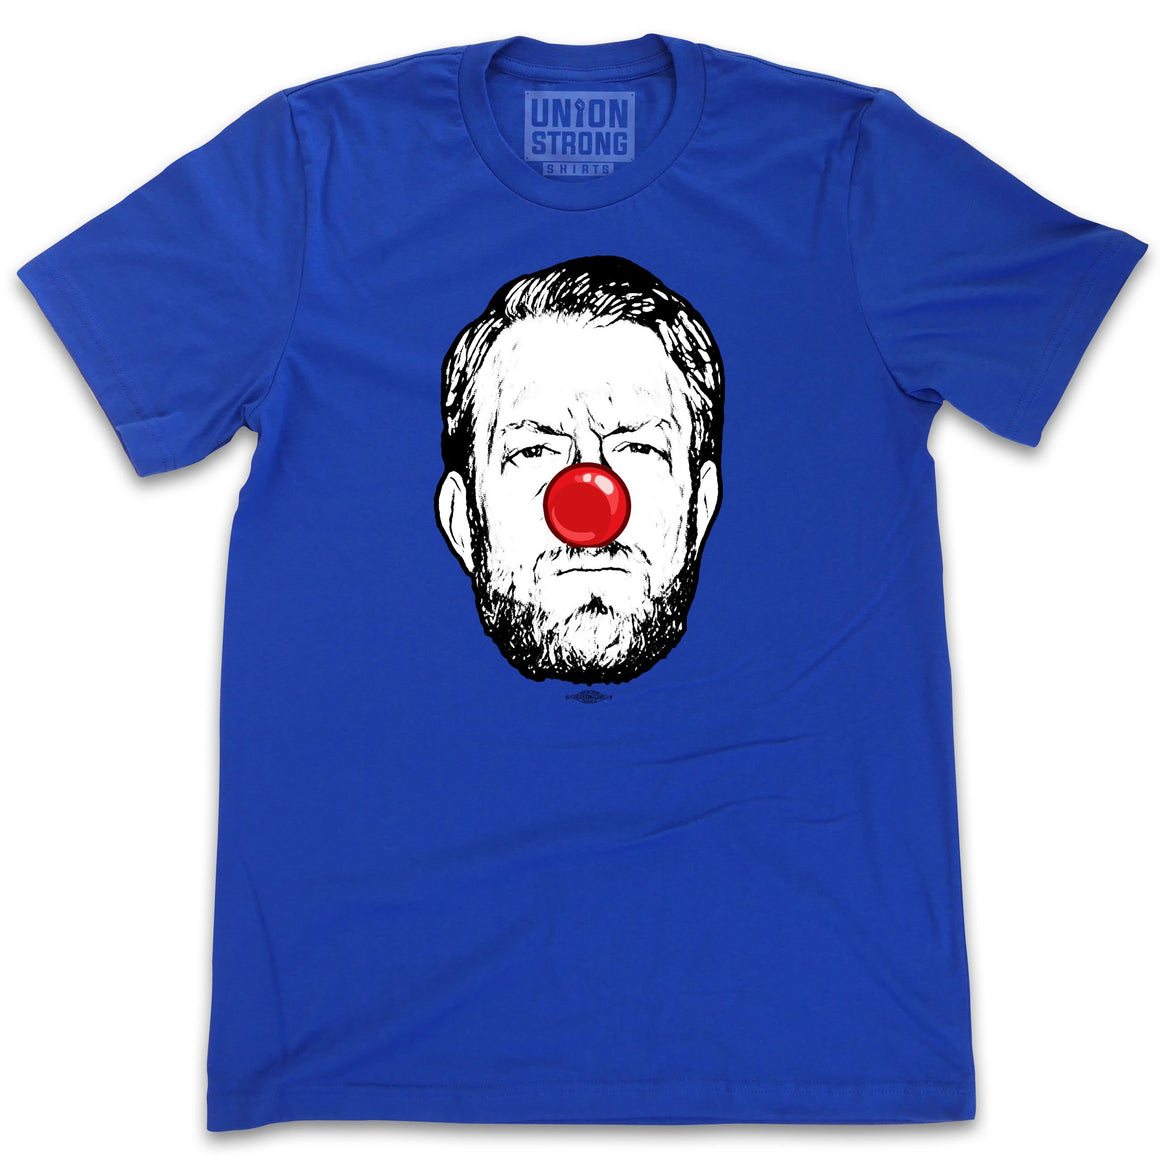 Clown Shirts unionstrongshirts